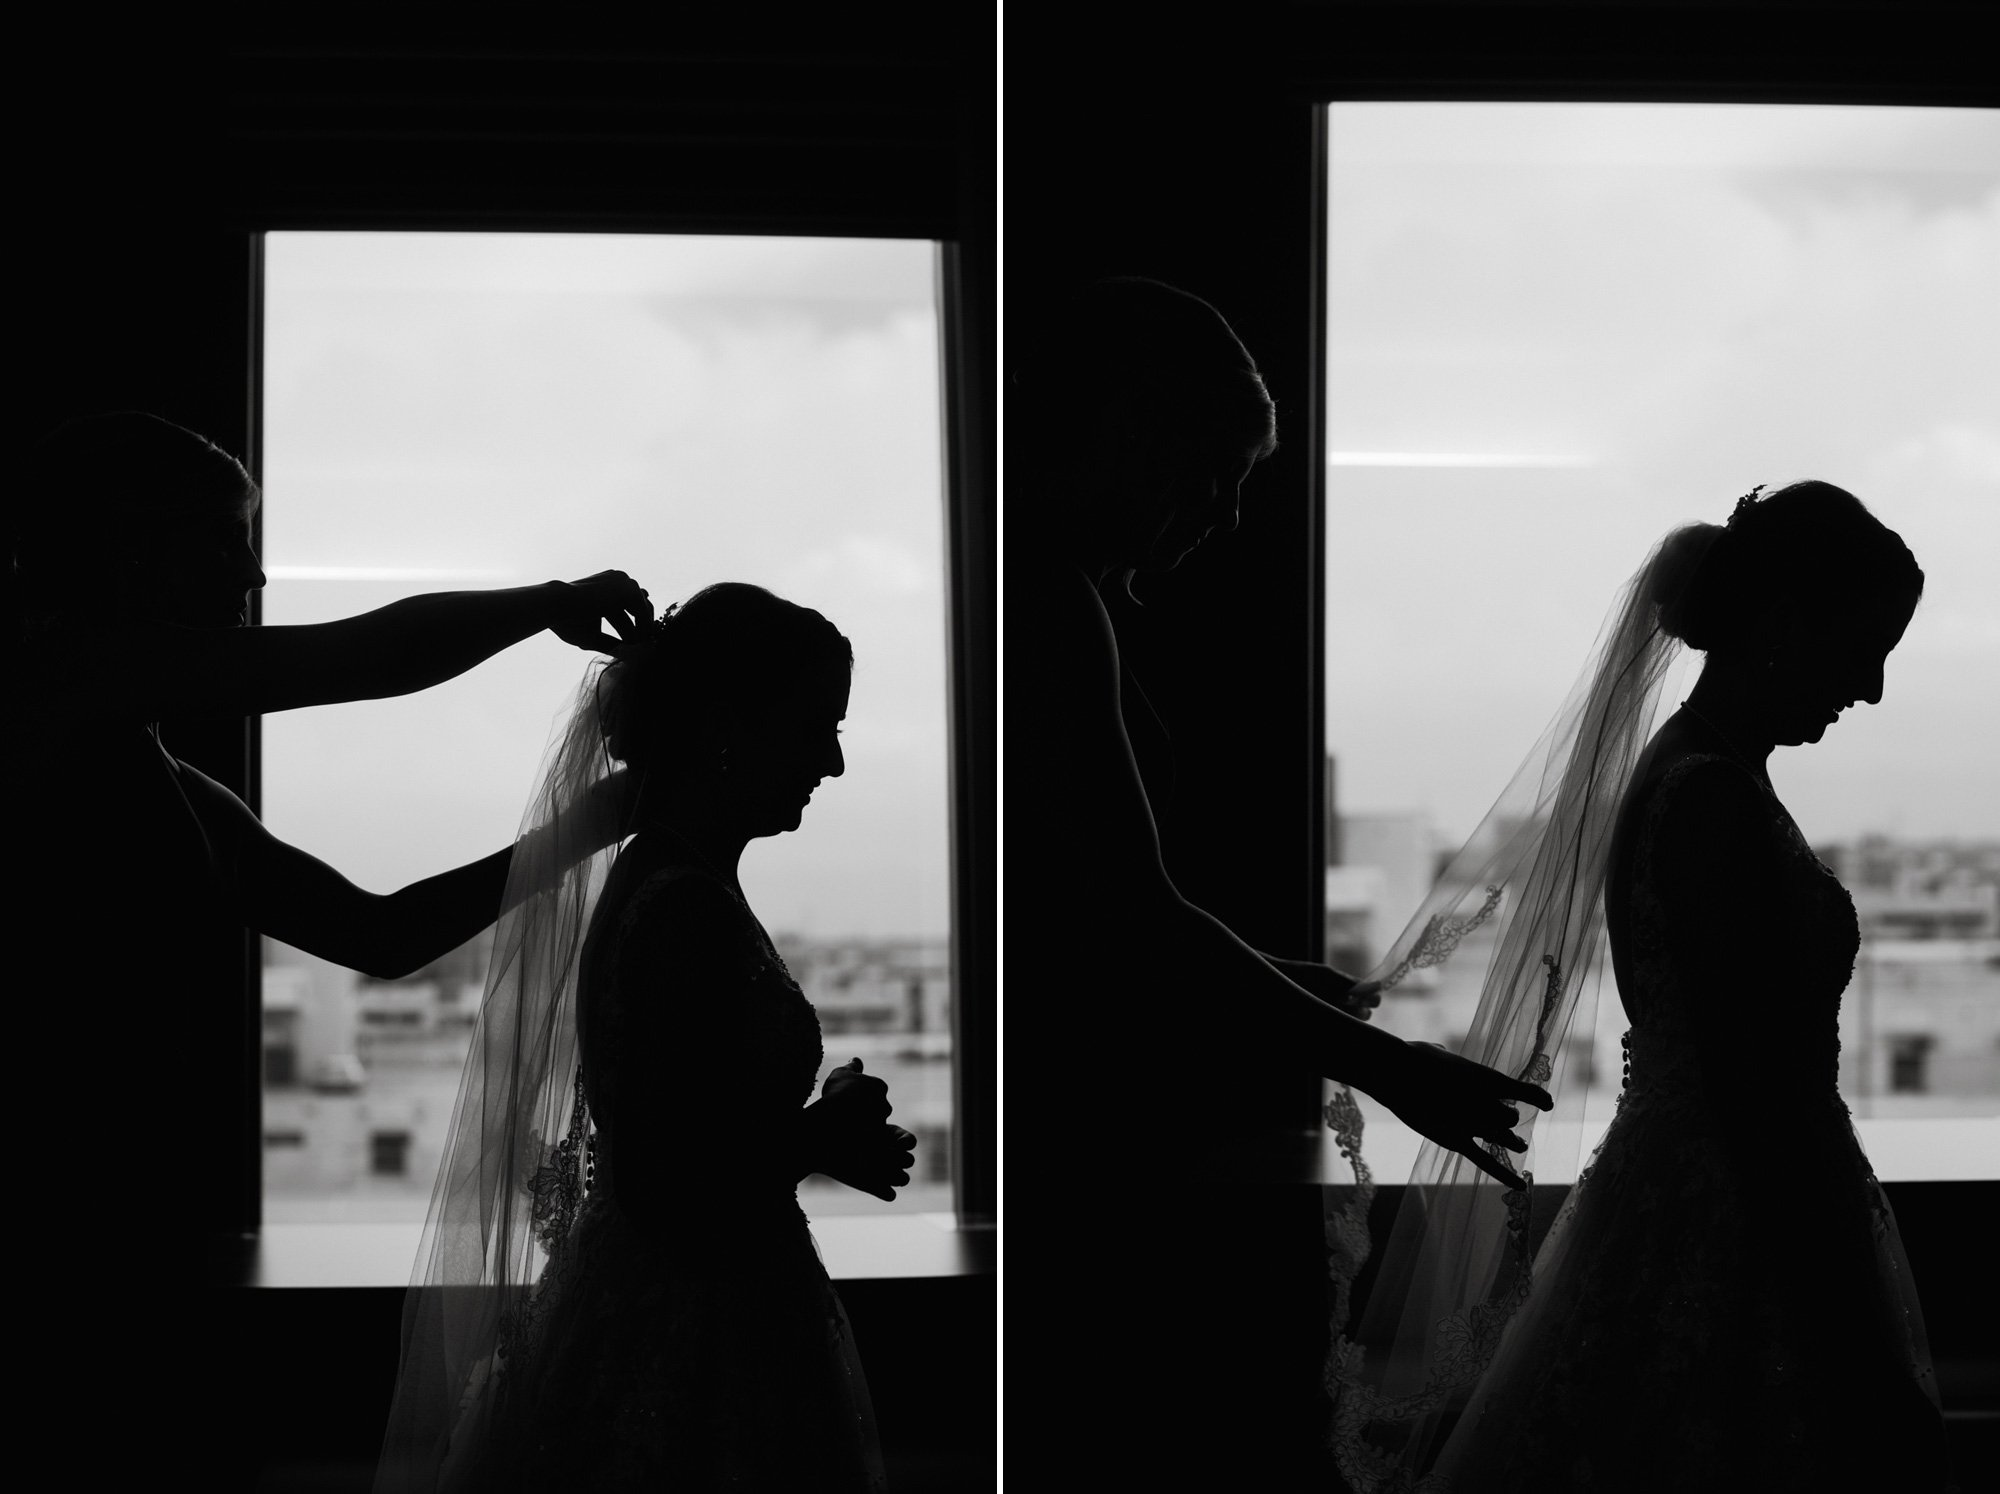 black and white wedding photographs of bride getting ready in front of a window, natural light wedding photography, austin wedding photographer